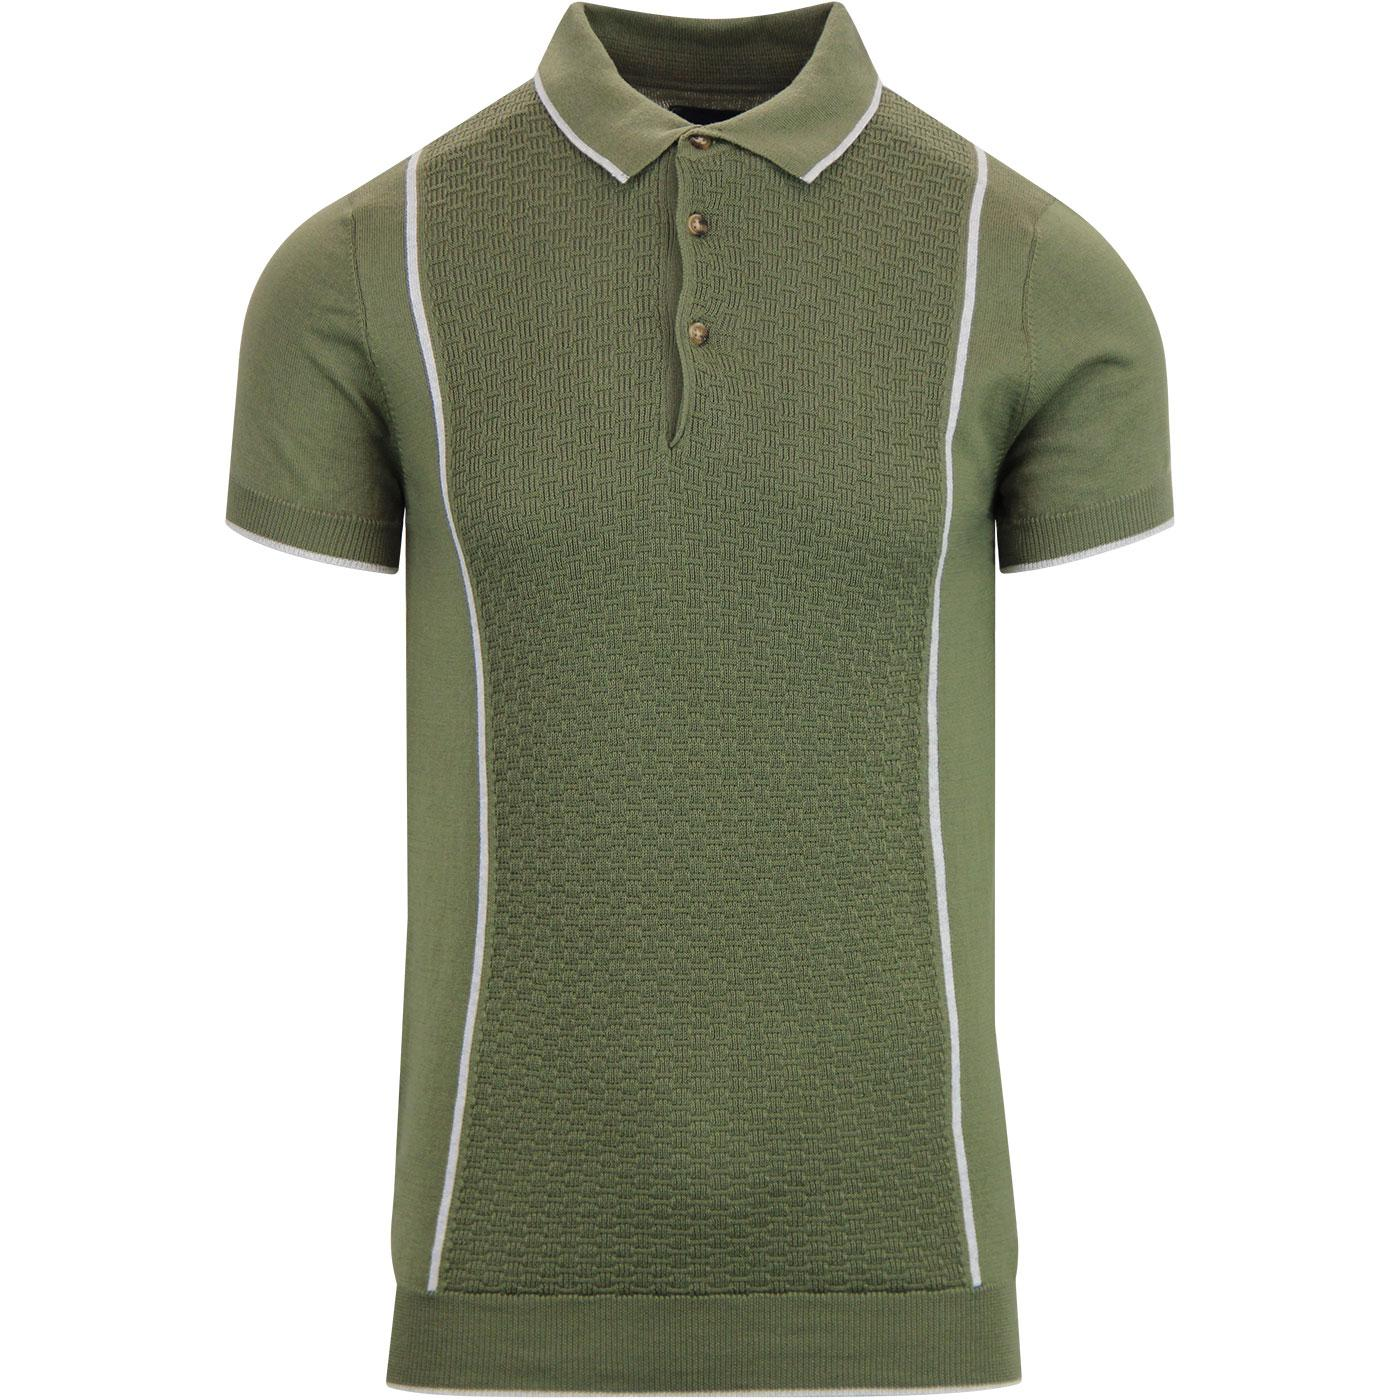 GUIDE LONDON Textured Panel Knitted Mod Polo GREEN